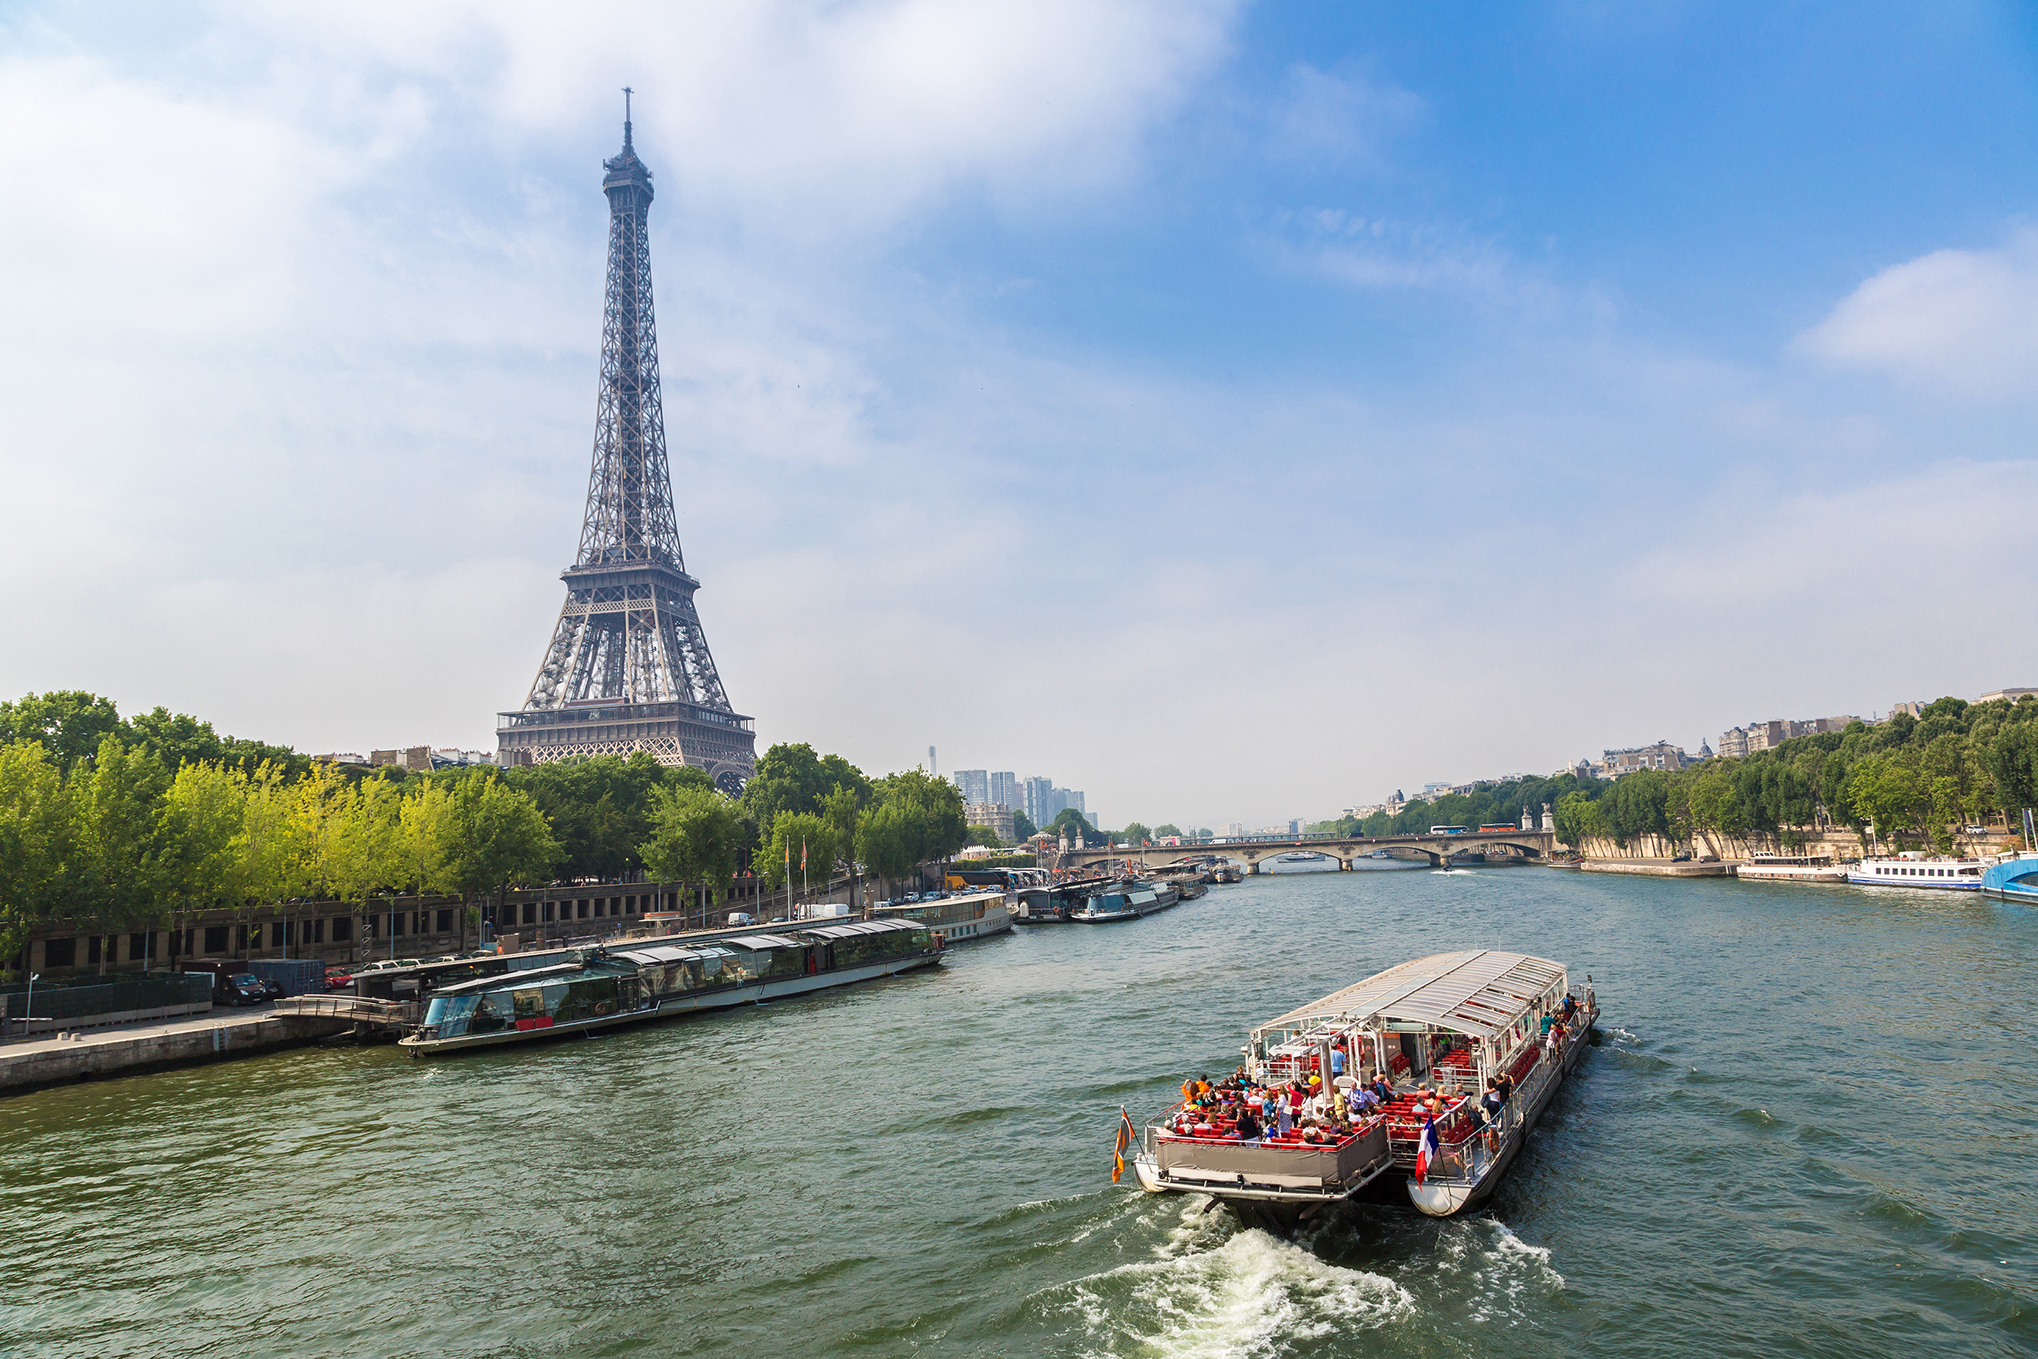 Docking in Paris is undoubtedly a major draw of any Seine river cruise.